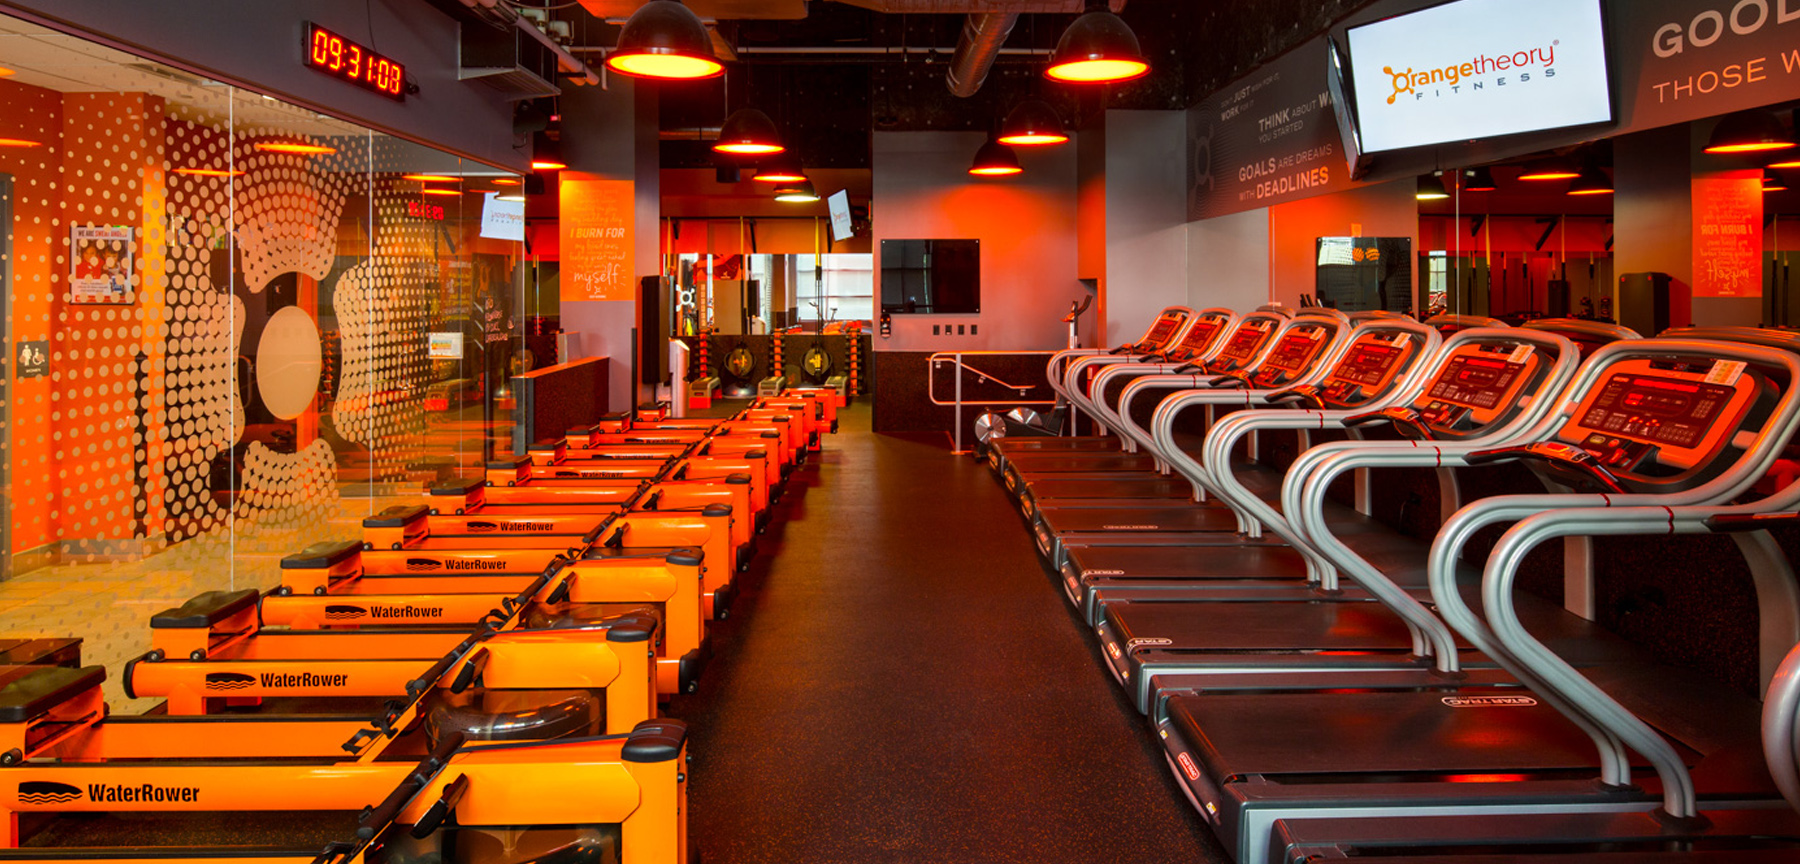 Orangetheory fitness cardio machines